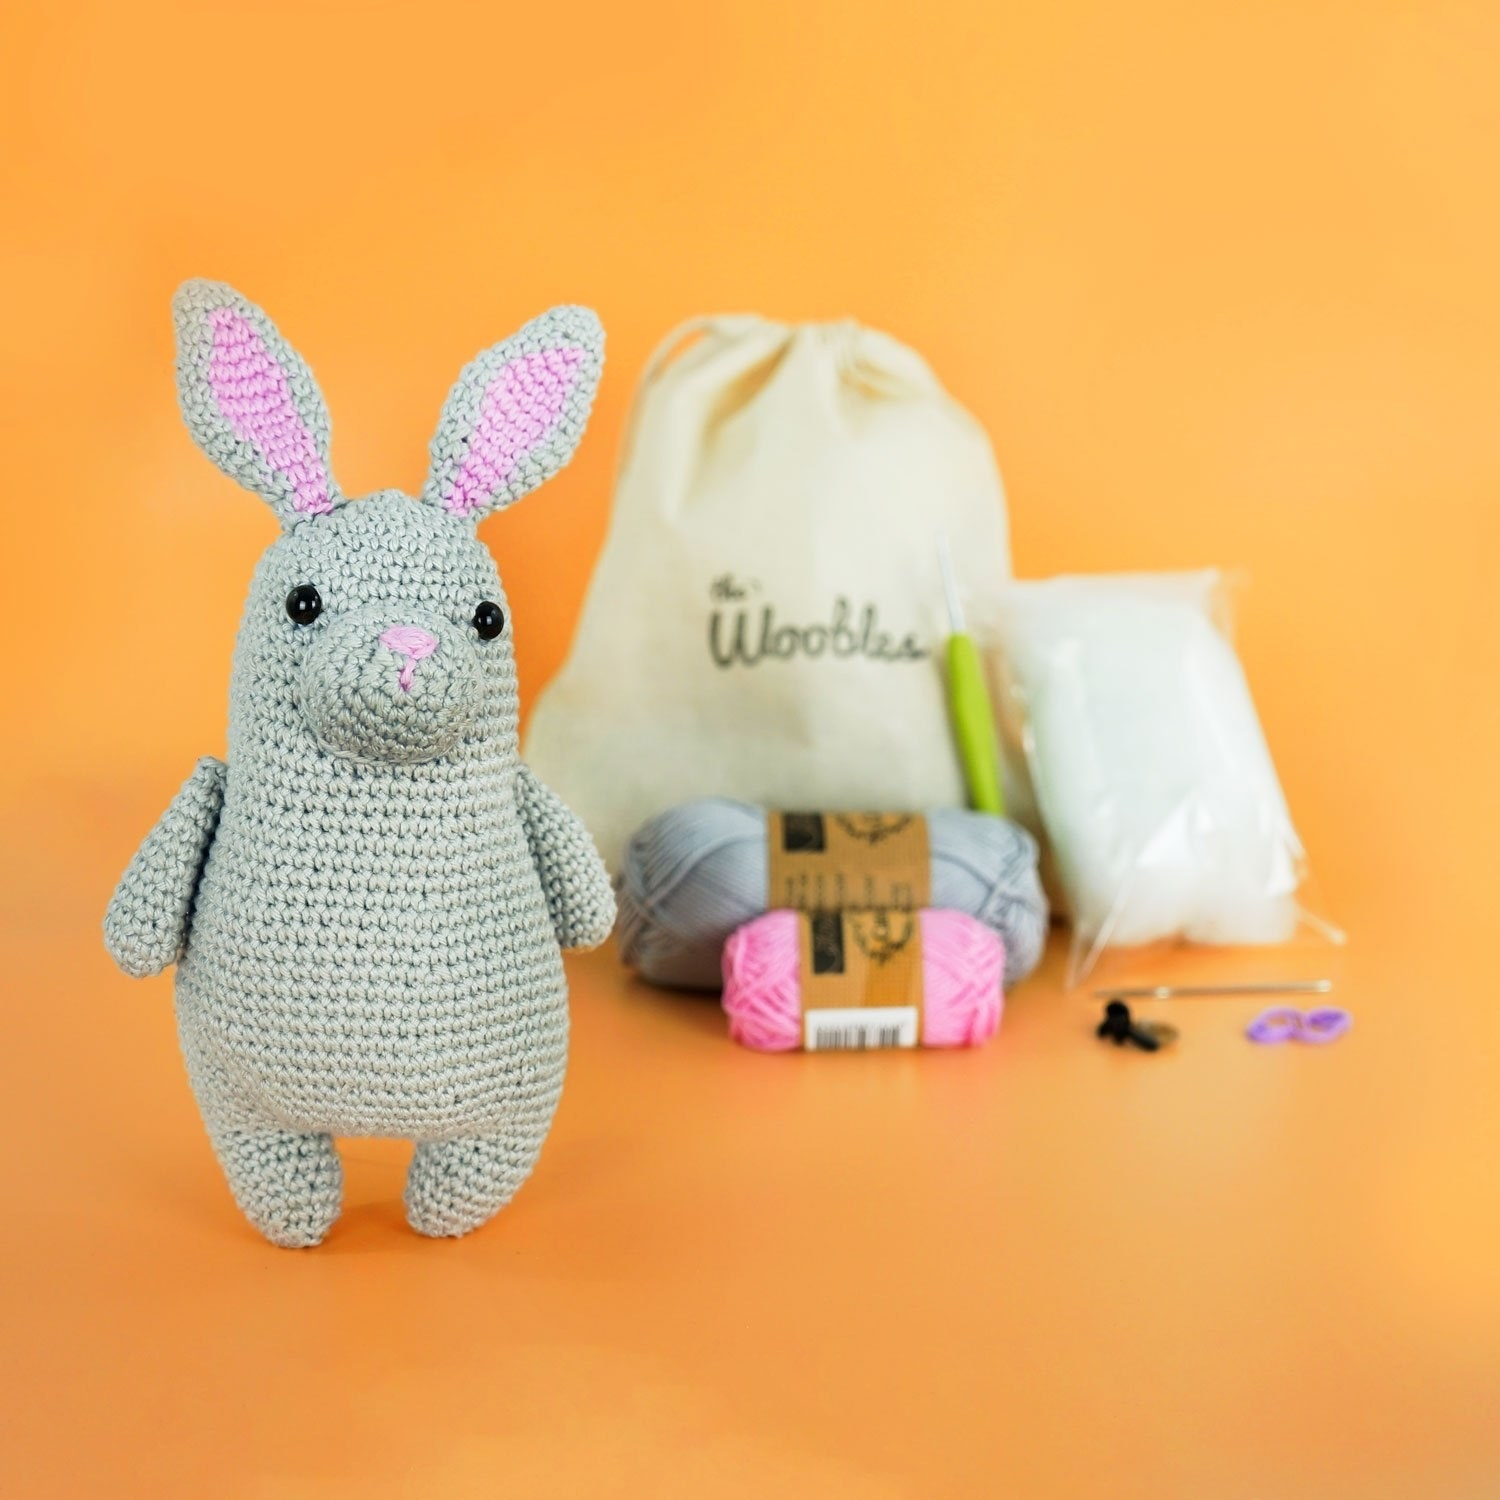 Crochet kit with knitted bunny